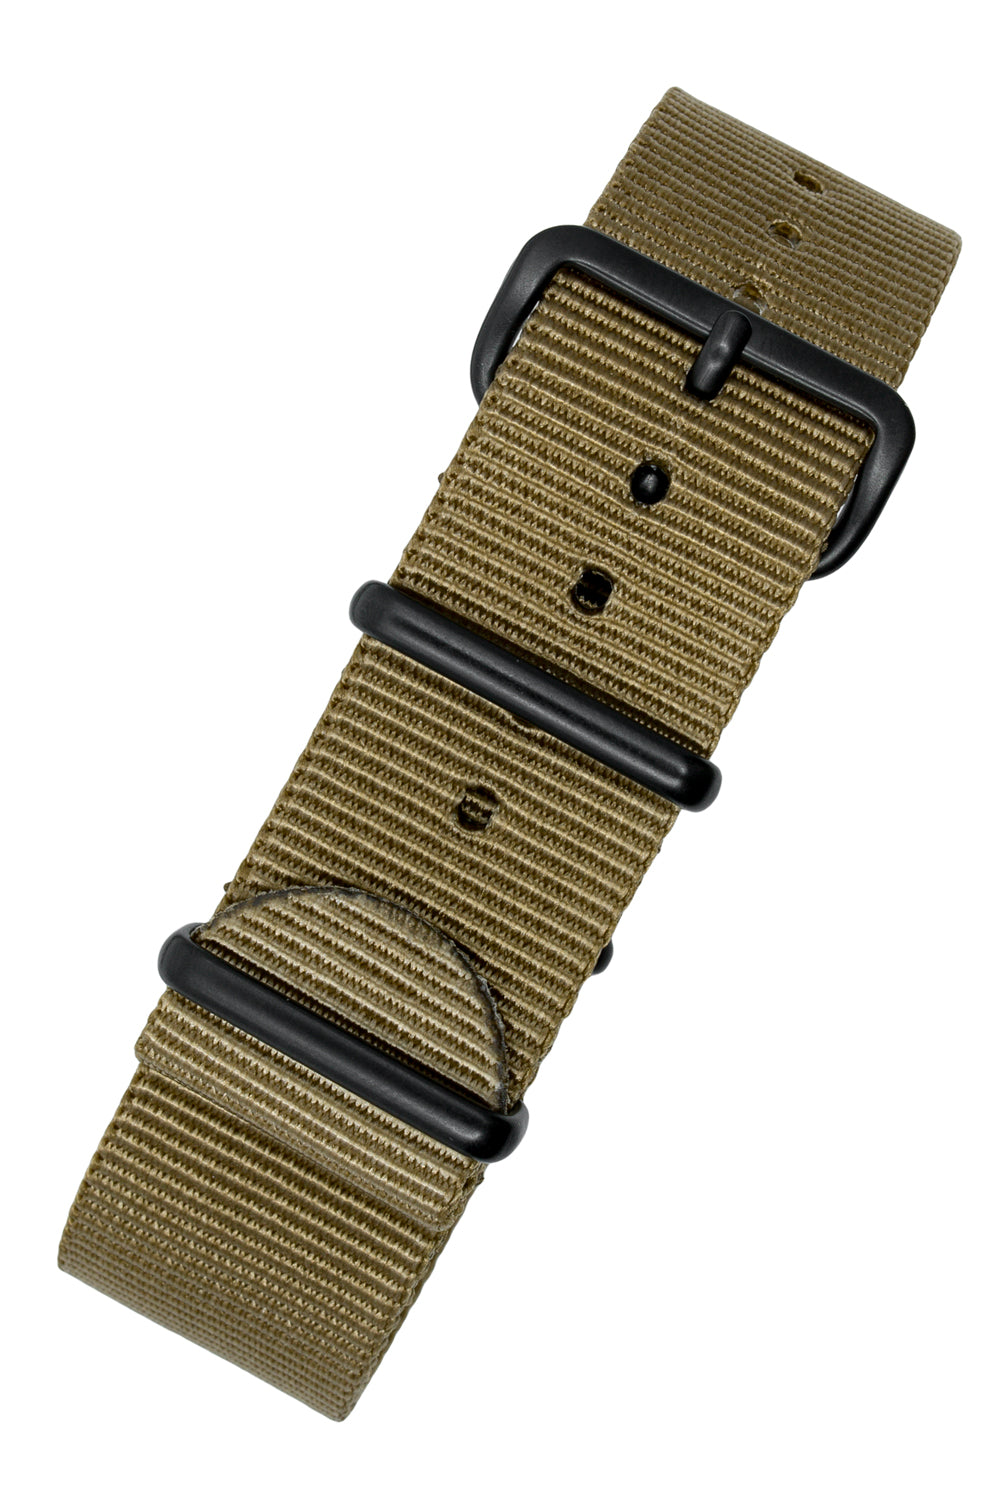 Nato Watch Straps in KHAKI with PVD Buckle and Keepers